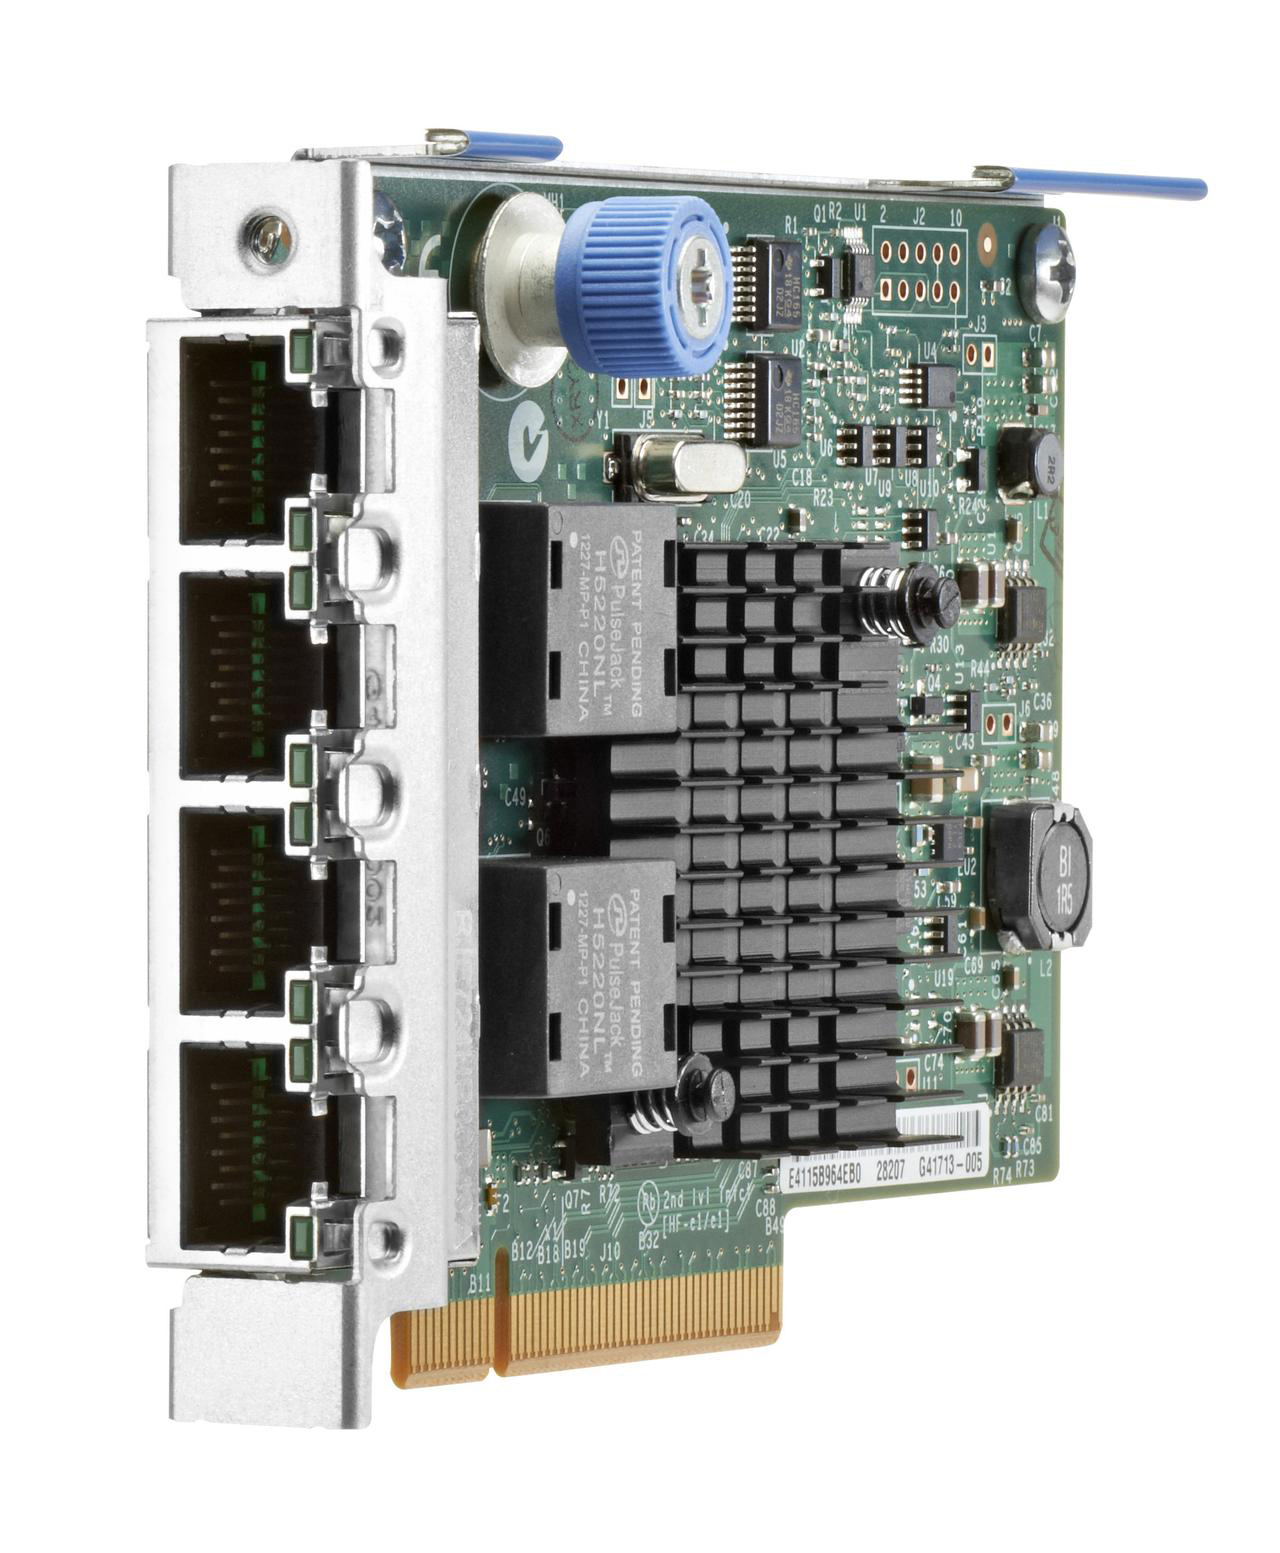 HPE Ethernet 1Gb 4-port 366FLR Adapter (665240-B21)